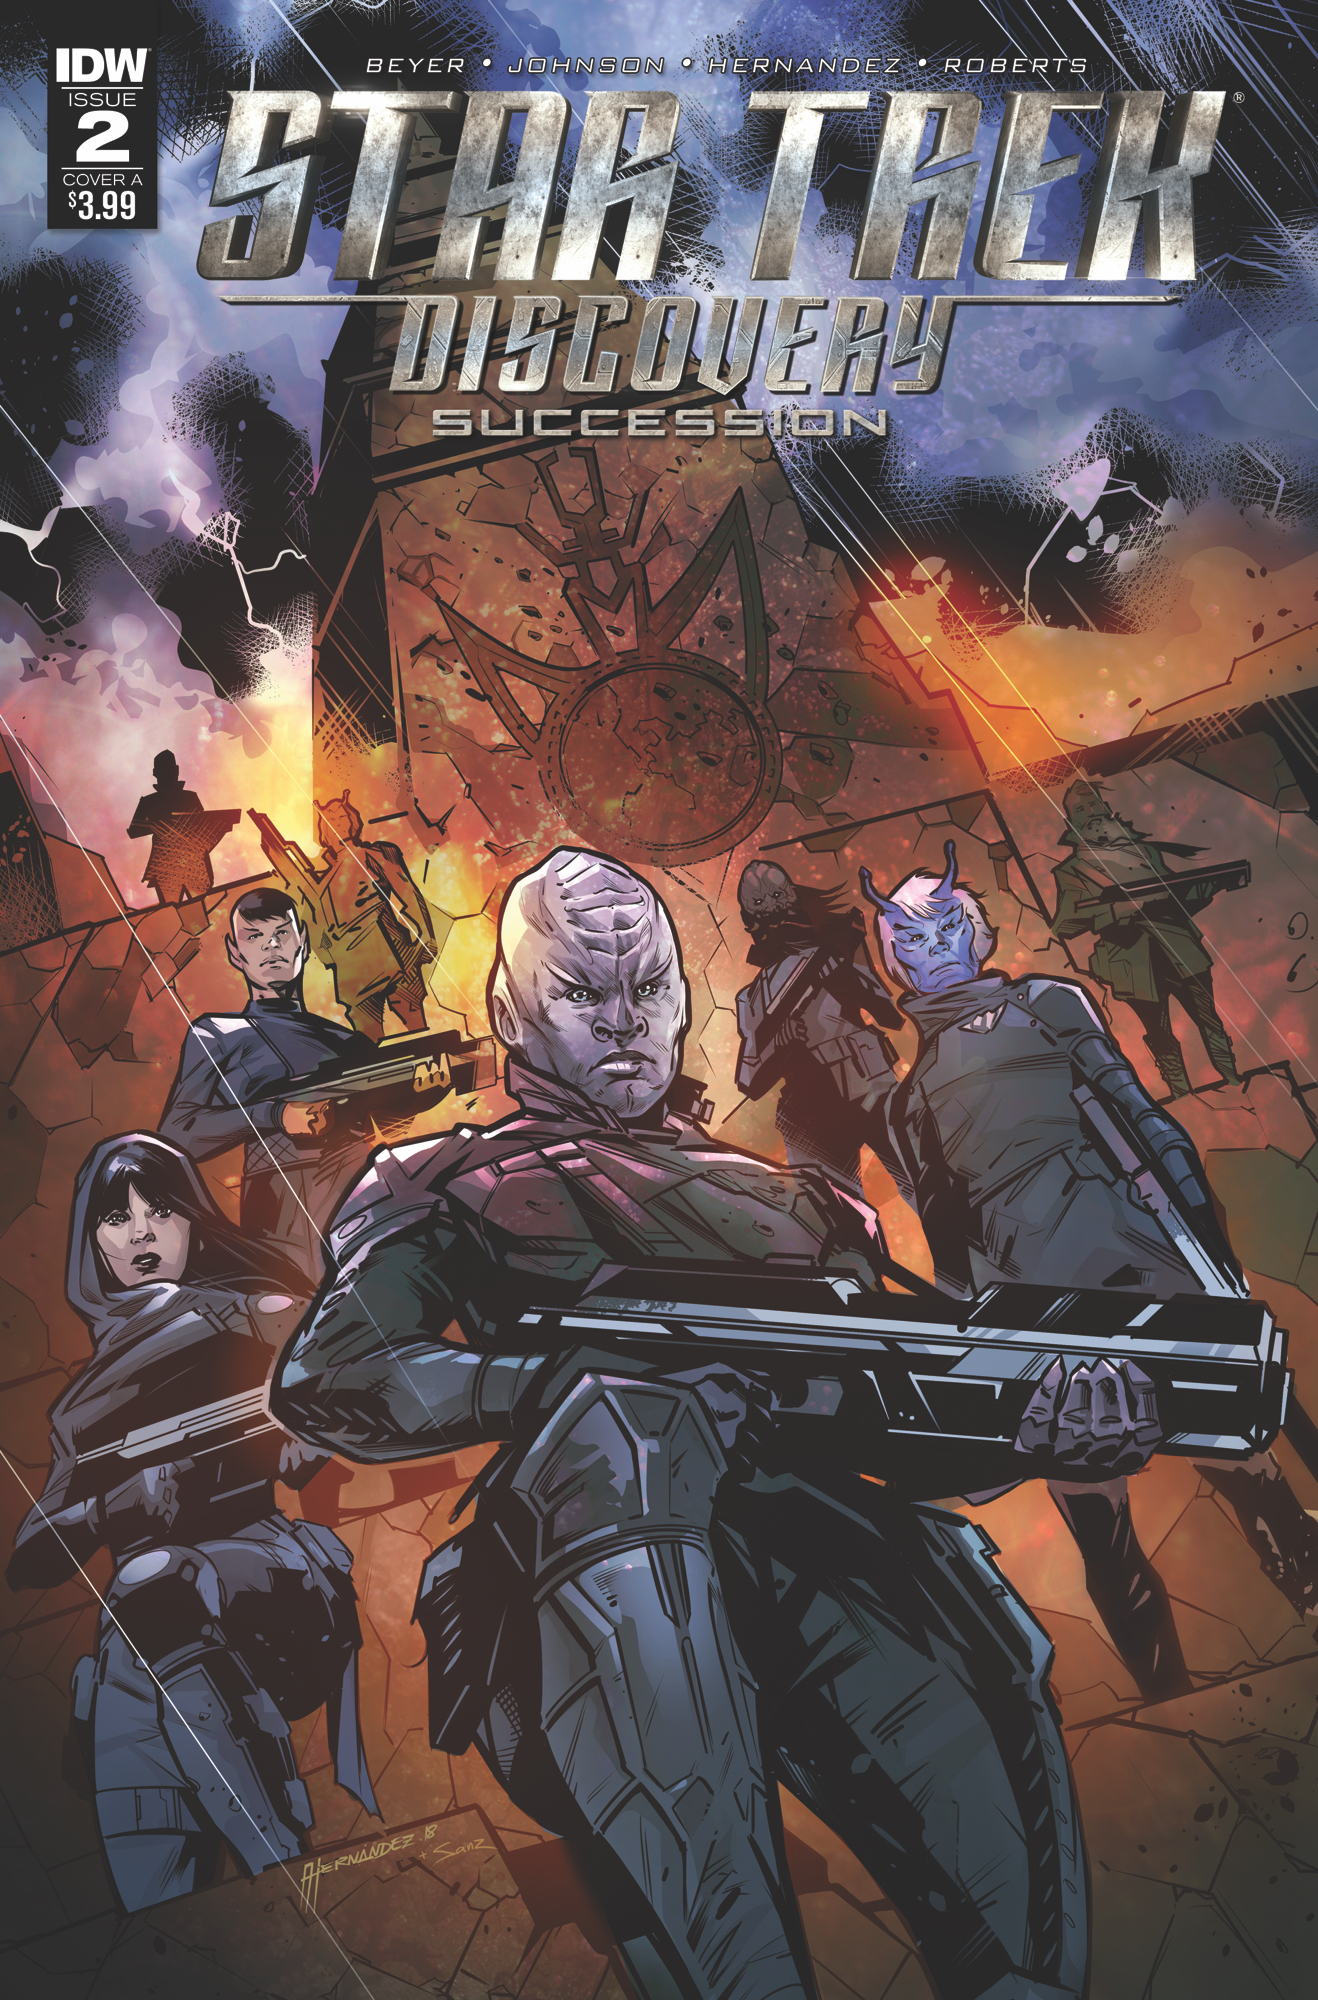 STAR TREK DISCOVERY SUCCESSION #2 CVR A HERNANDEZ